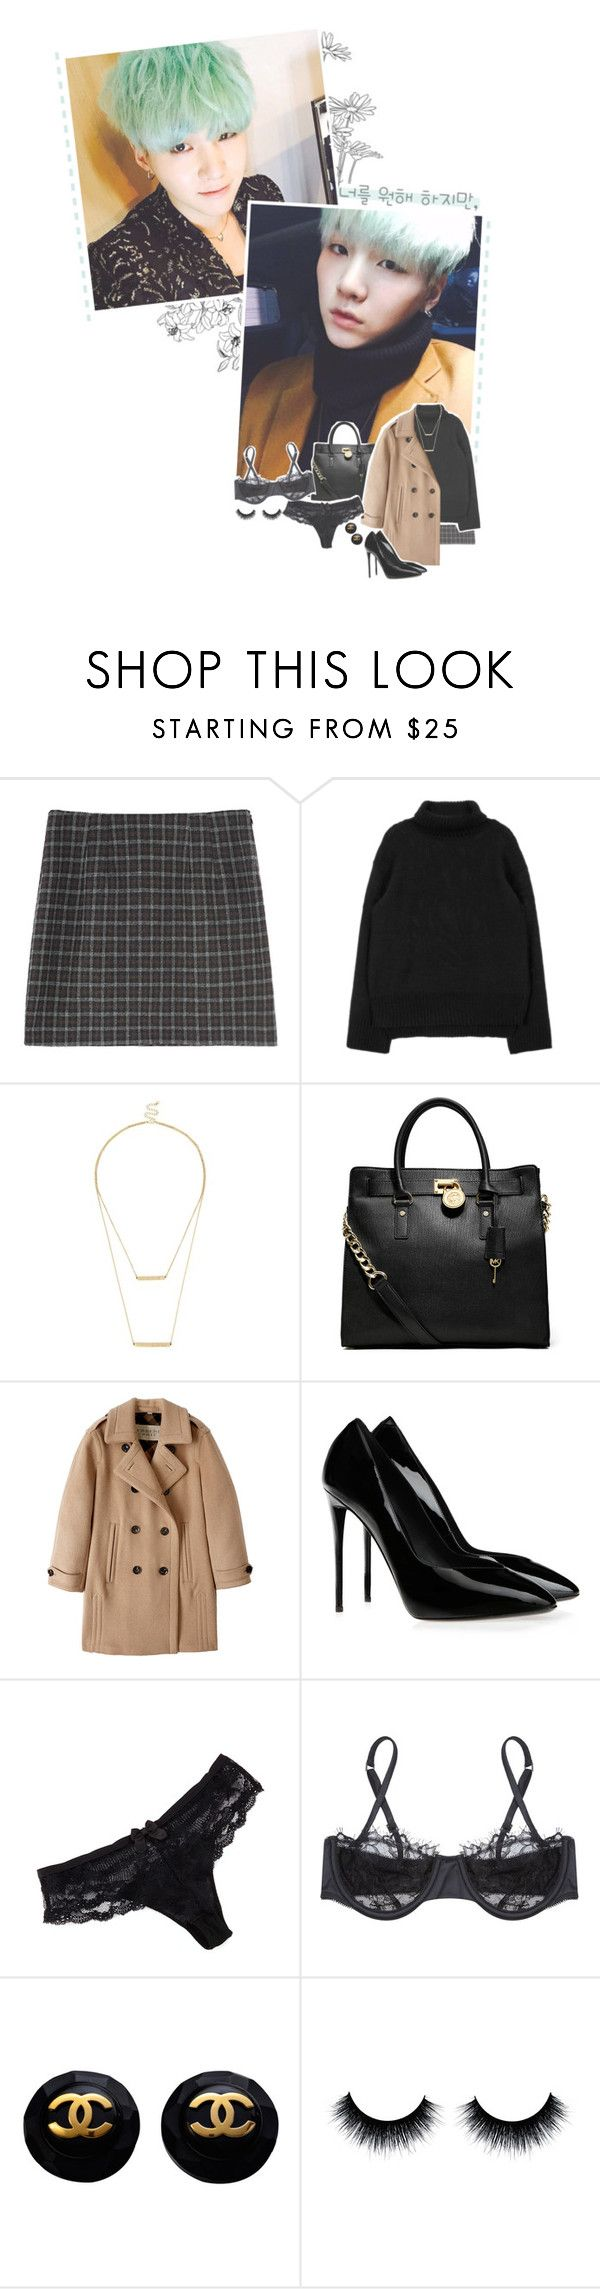 """━━━☆; fancy dinner date with yoongi"" by you-got-no-jams ❤ liked on Polyvore featuring Sole Society, MICHAEL Michael Kors, Burberry, Giuseppe Zanotti, Chantelle, Morgan Lane and outfitsbyeffie"